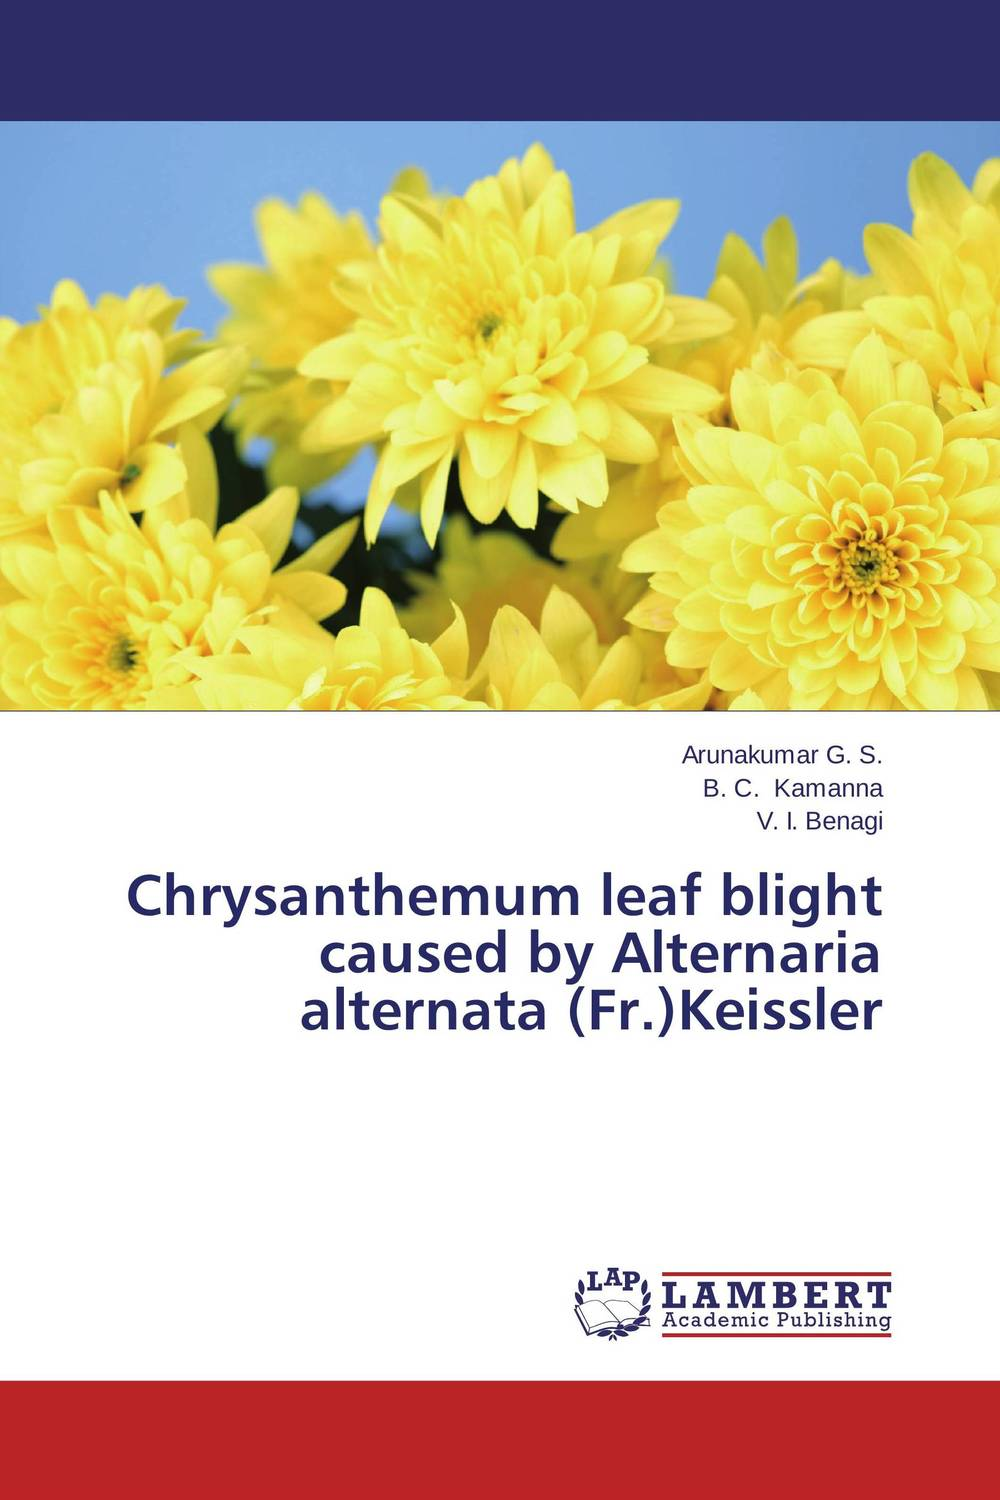 Chrysanthemum leaf blight caused by Alternaria alternata (Fr.)Keissler found in brooklyn